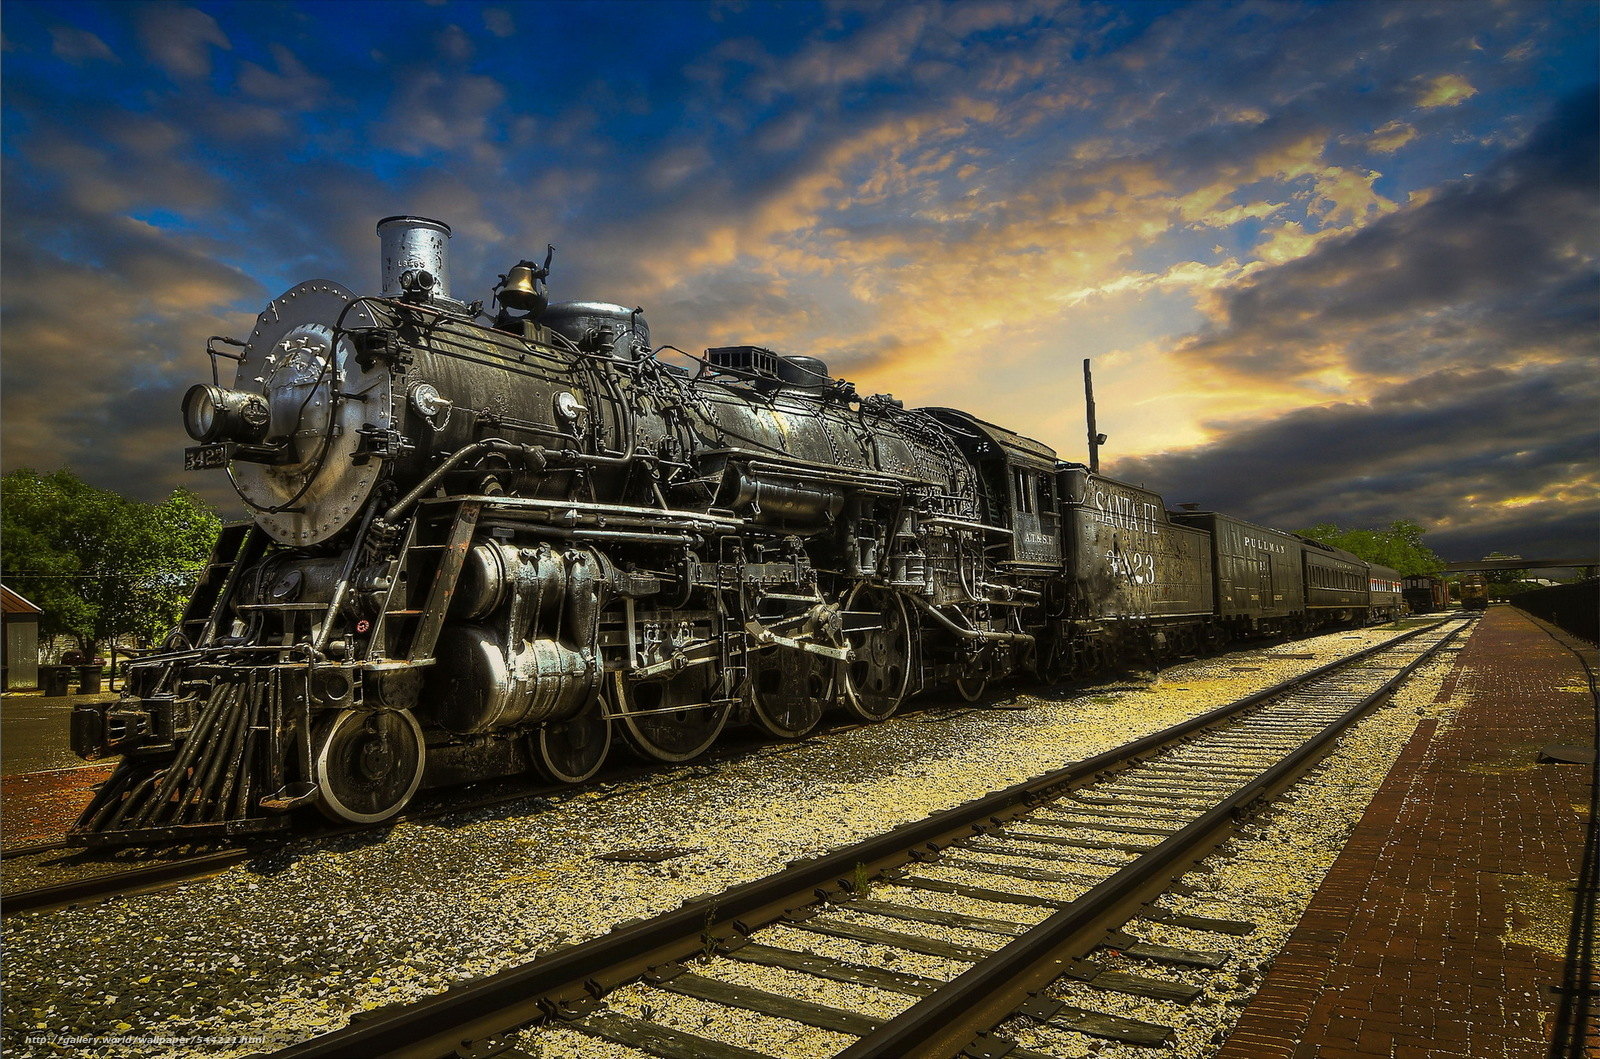 Download wallpaper steam train railway station free desktop wallpaper in the resolution - Walpepar photos ...